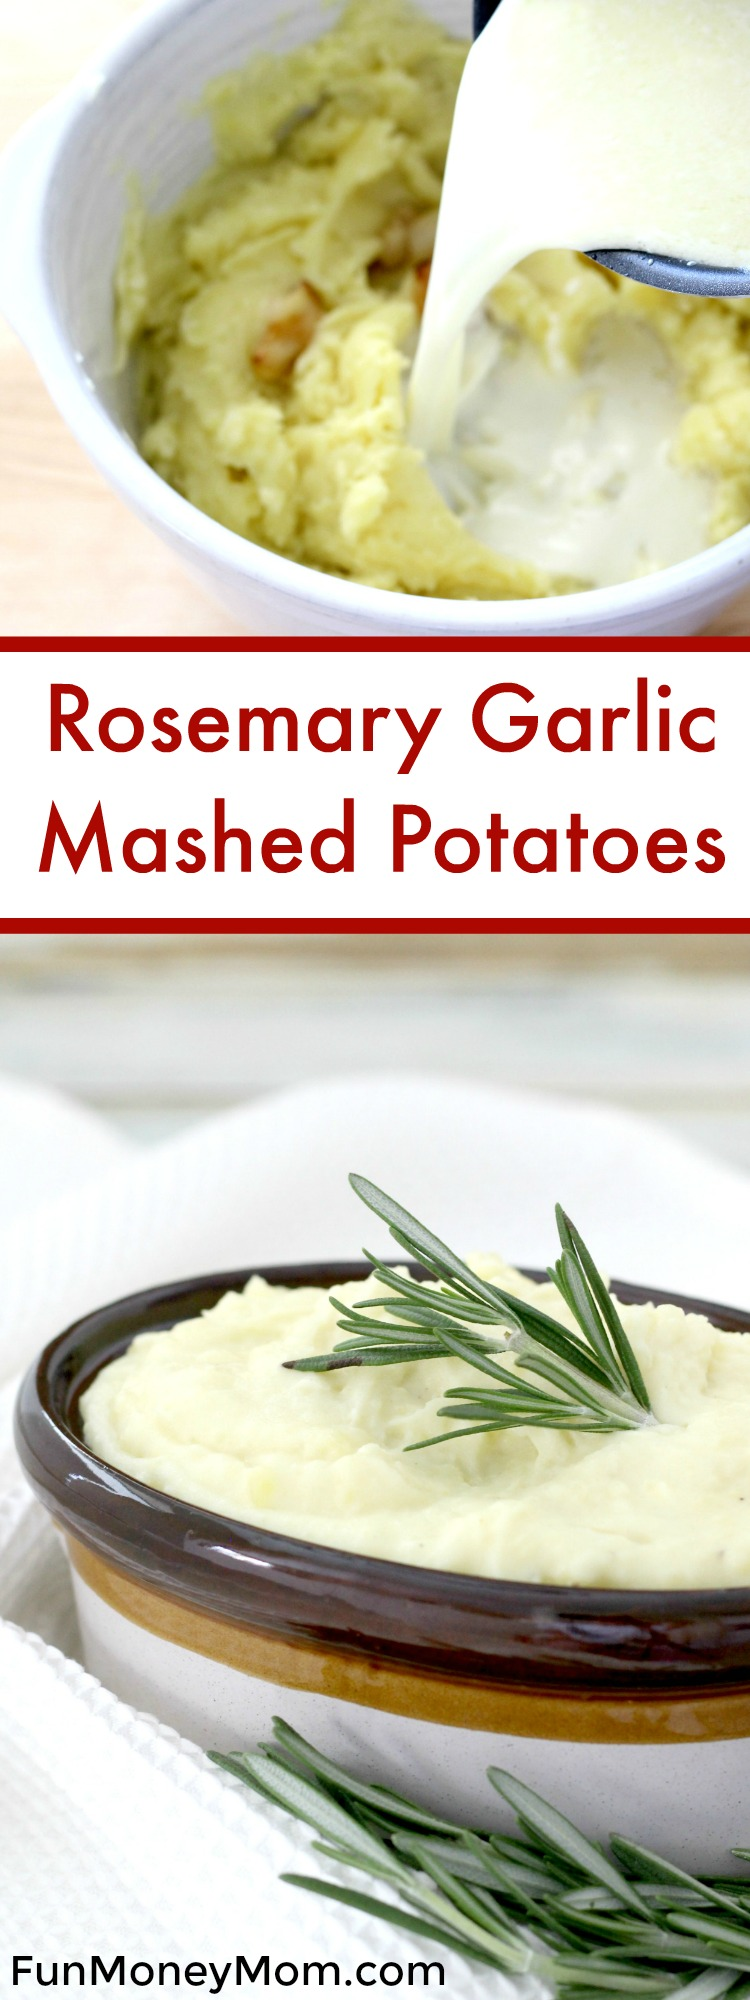 Rosemary Garlic Mashed Potatoes Pinterest